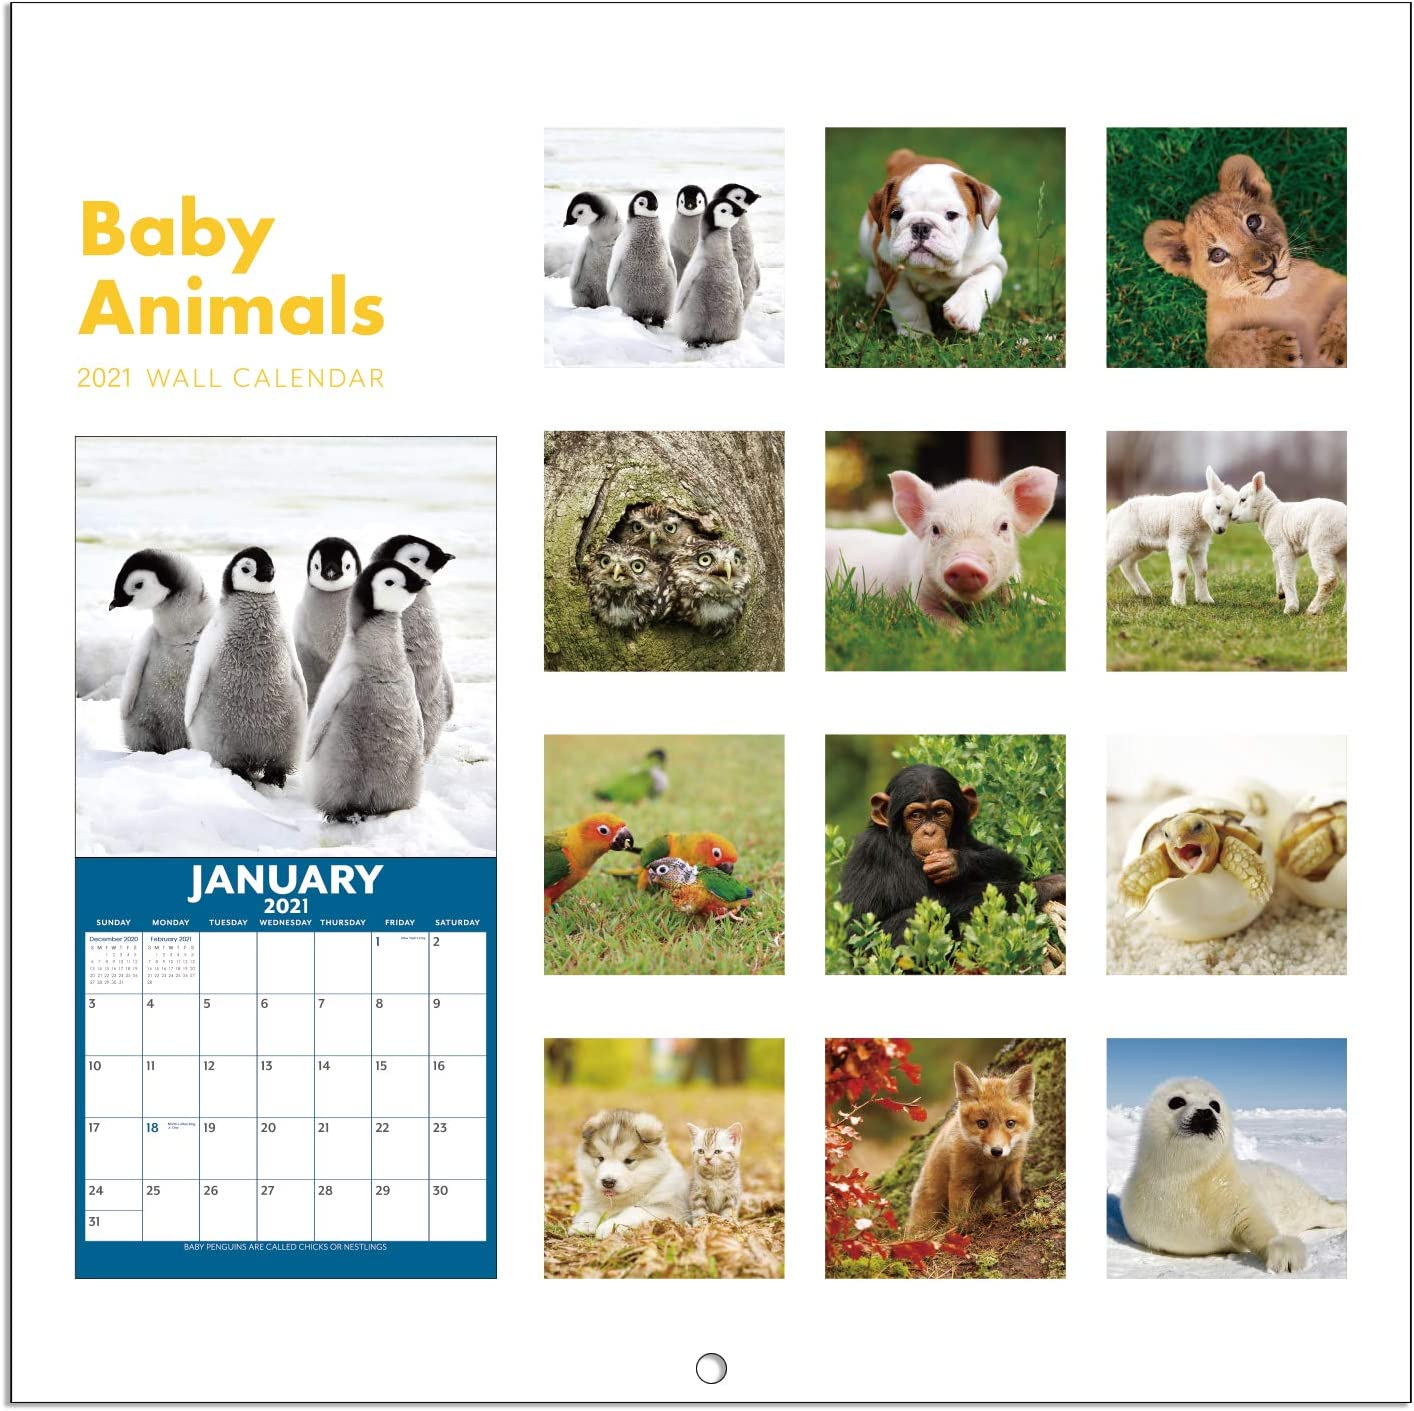 2021 Calendar Baby Animals Wall Calendar 2021 With Thick Sturdy Paper 12 X 12 Inches 12 Months January 2021 December 2021 Amazon Co Uk Office Products